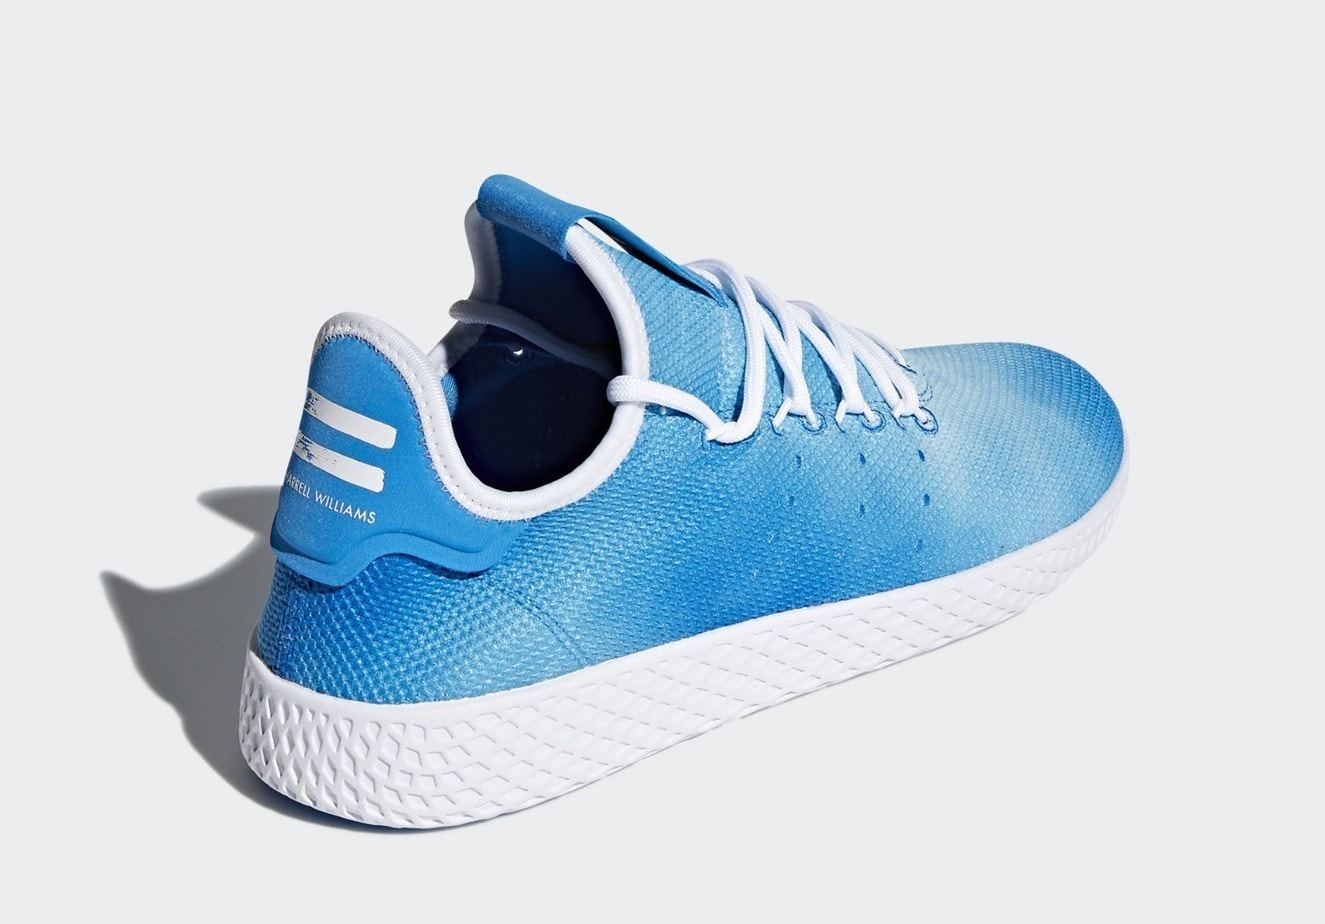 fbe9efc03 ... coupon for pharrell x adidas tennis hu green release date march 2 2018.  price 110